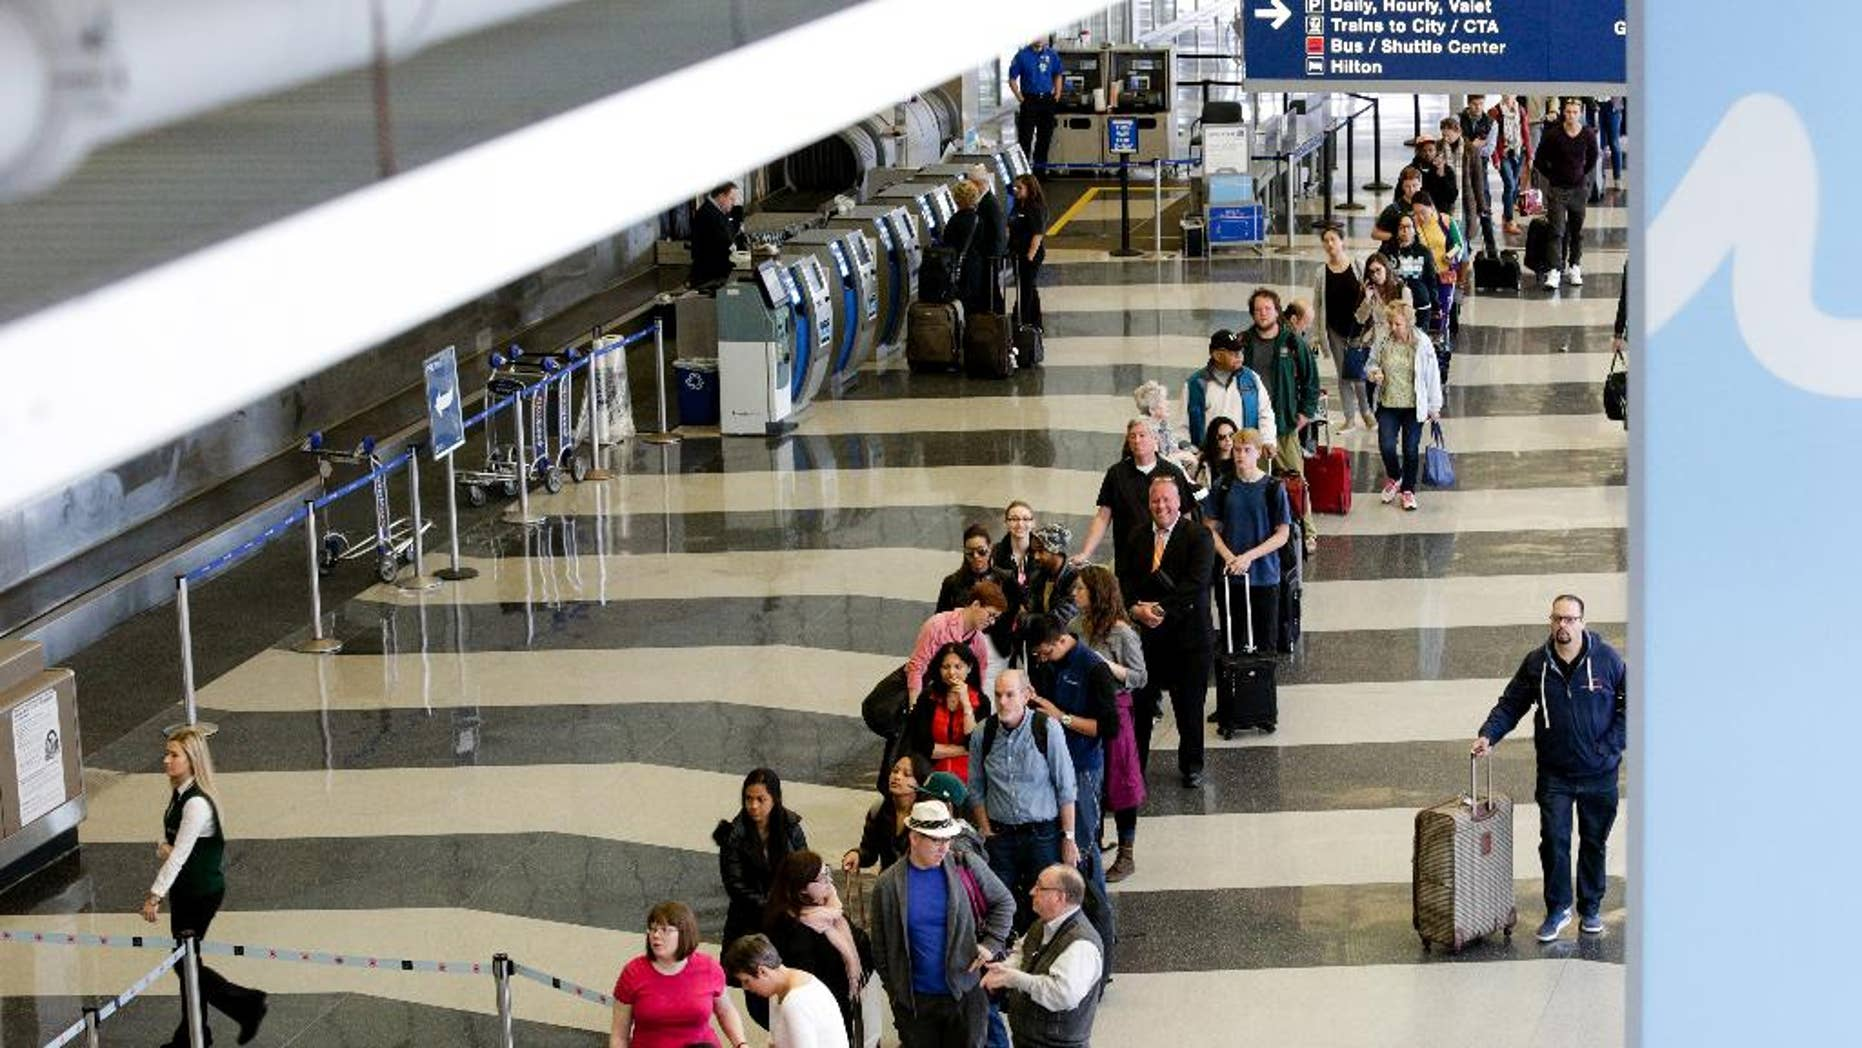 File-This May 16, 2016, file photo shows a long line of travelers waiting for the TSA security check point at O'Hare International airport, in Chicago.  As airport security lines get longer, the finger-pointing over blame is growing too. The nation's leading airlines, already feuding with the Transportation Security Administration, are now taking on Congress. The trade group Airlines for America on Thursday, May 19, 2016, says Congress should reverse a 2013 decision that diverted $12.6 billion in passenger-security fees to reducing the federal budget deficit. The airlines want that money to pay for airport security screening. (AP Photo/Teresa Crawford)